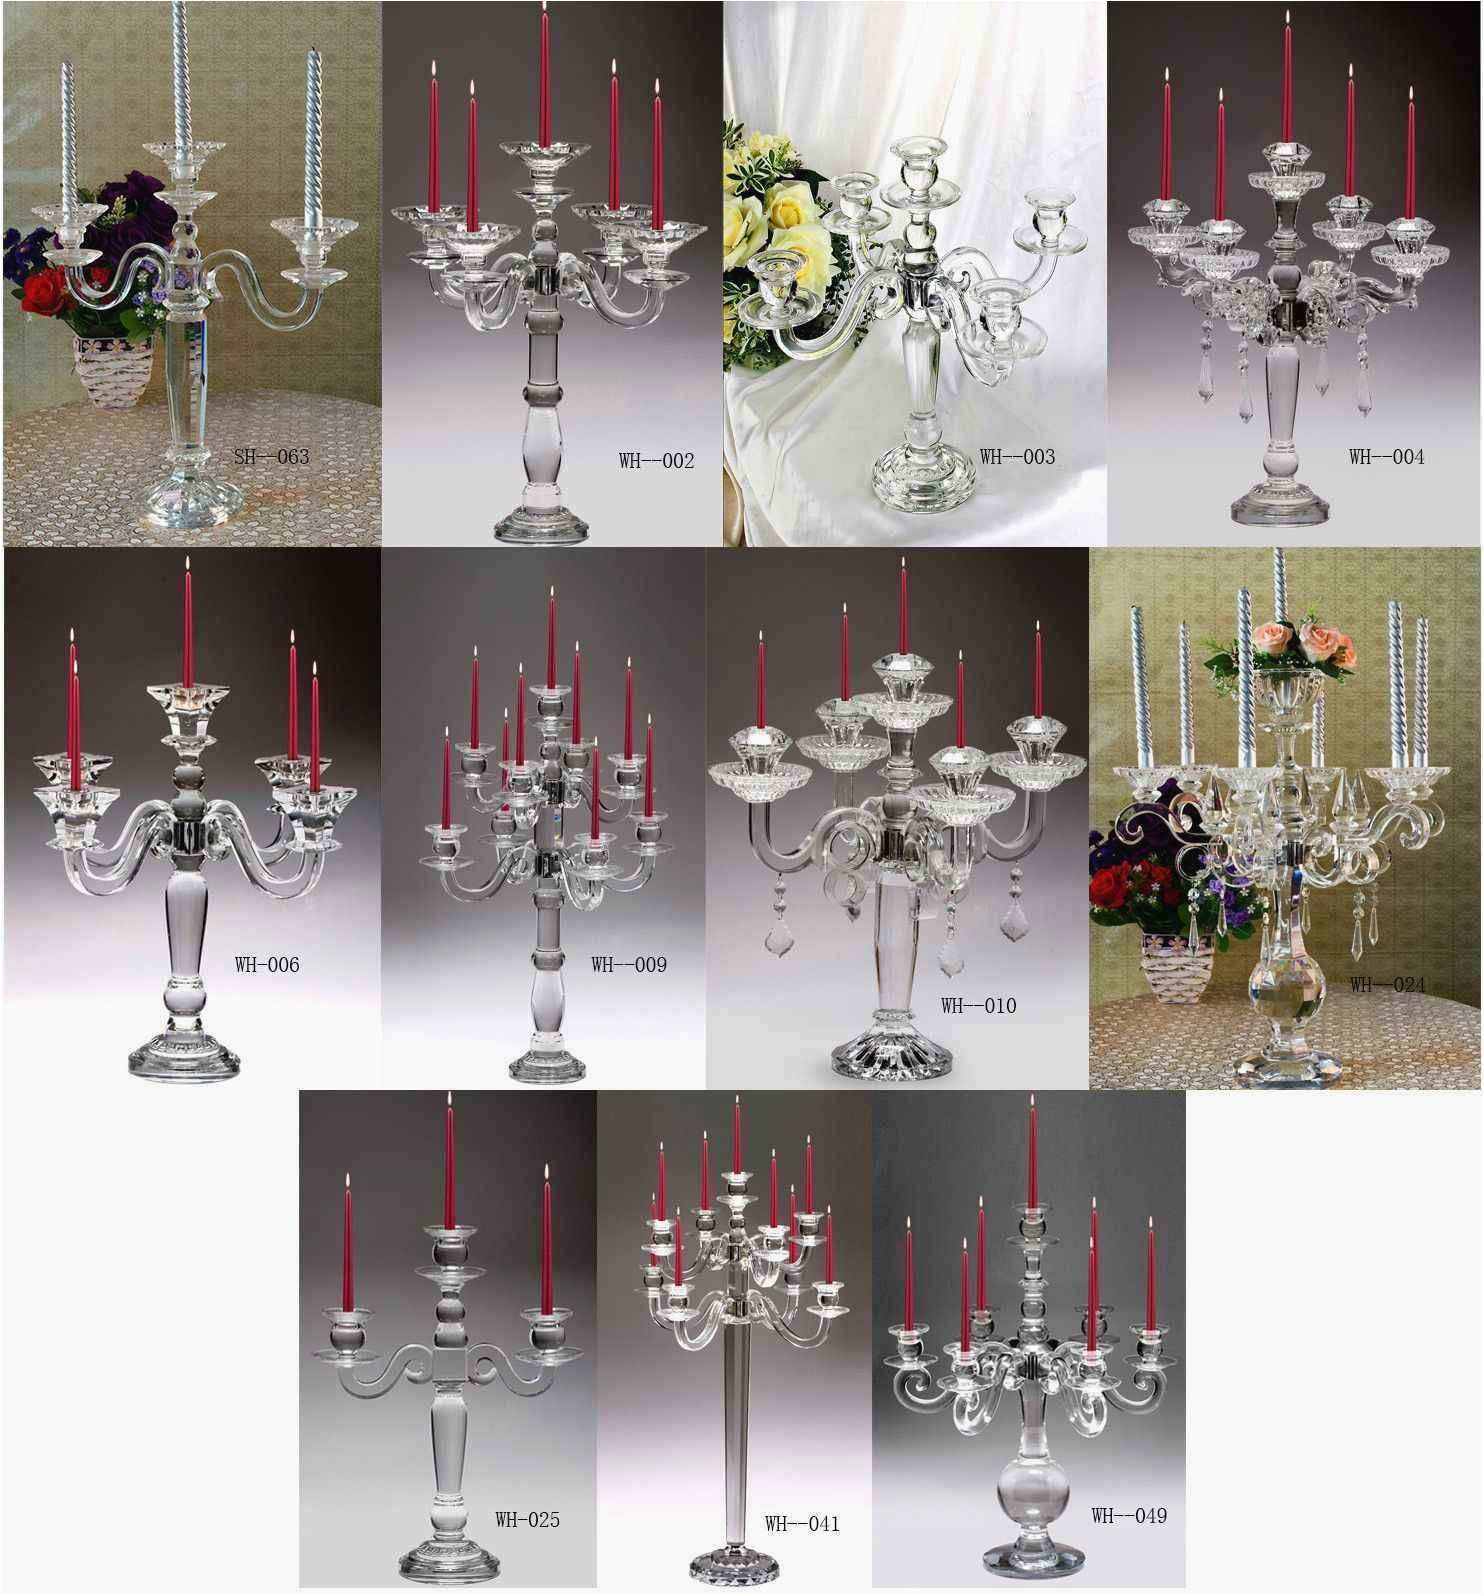 decorative glass beads for vases uk of candle centerpieces idea luxury 15 cheap and easy diy vase filler throughout candle centerpieces ideas candle vases centerpieces impressive glass bead vase filler 1 4h amazing